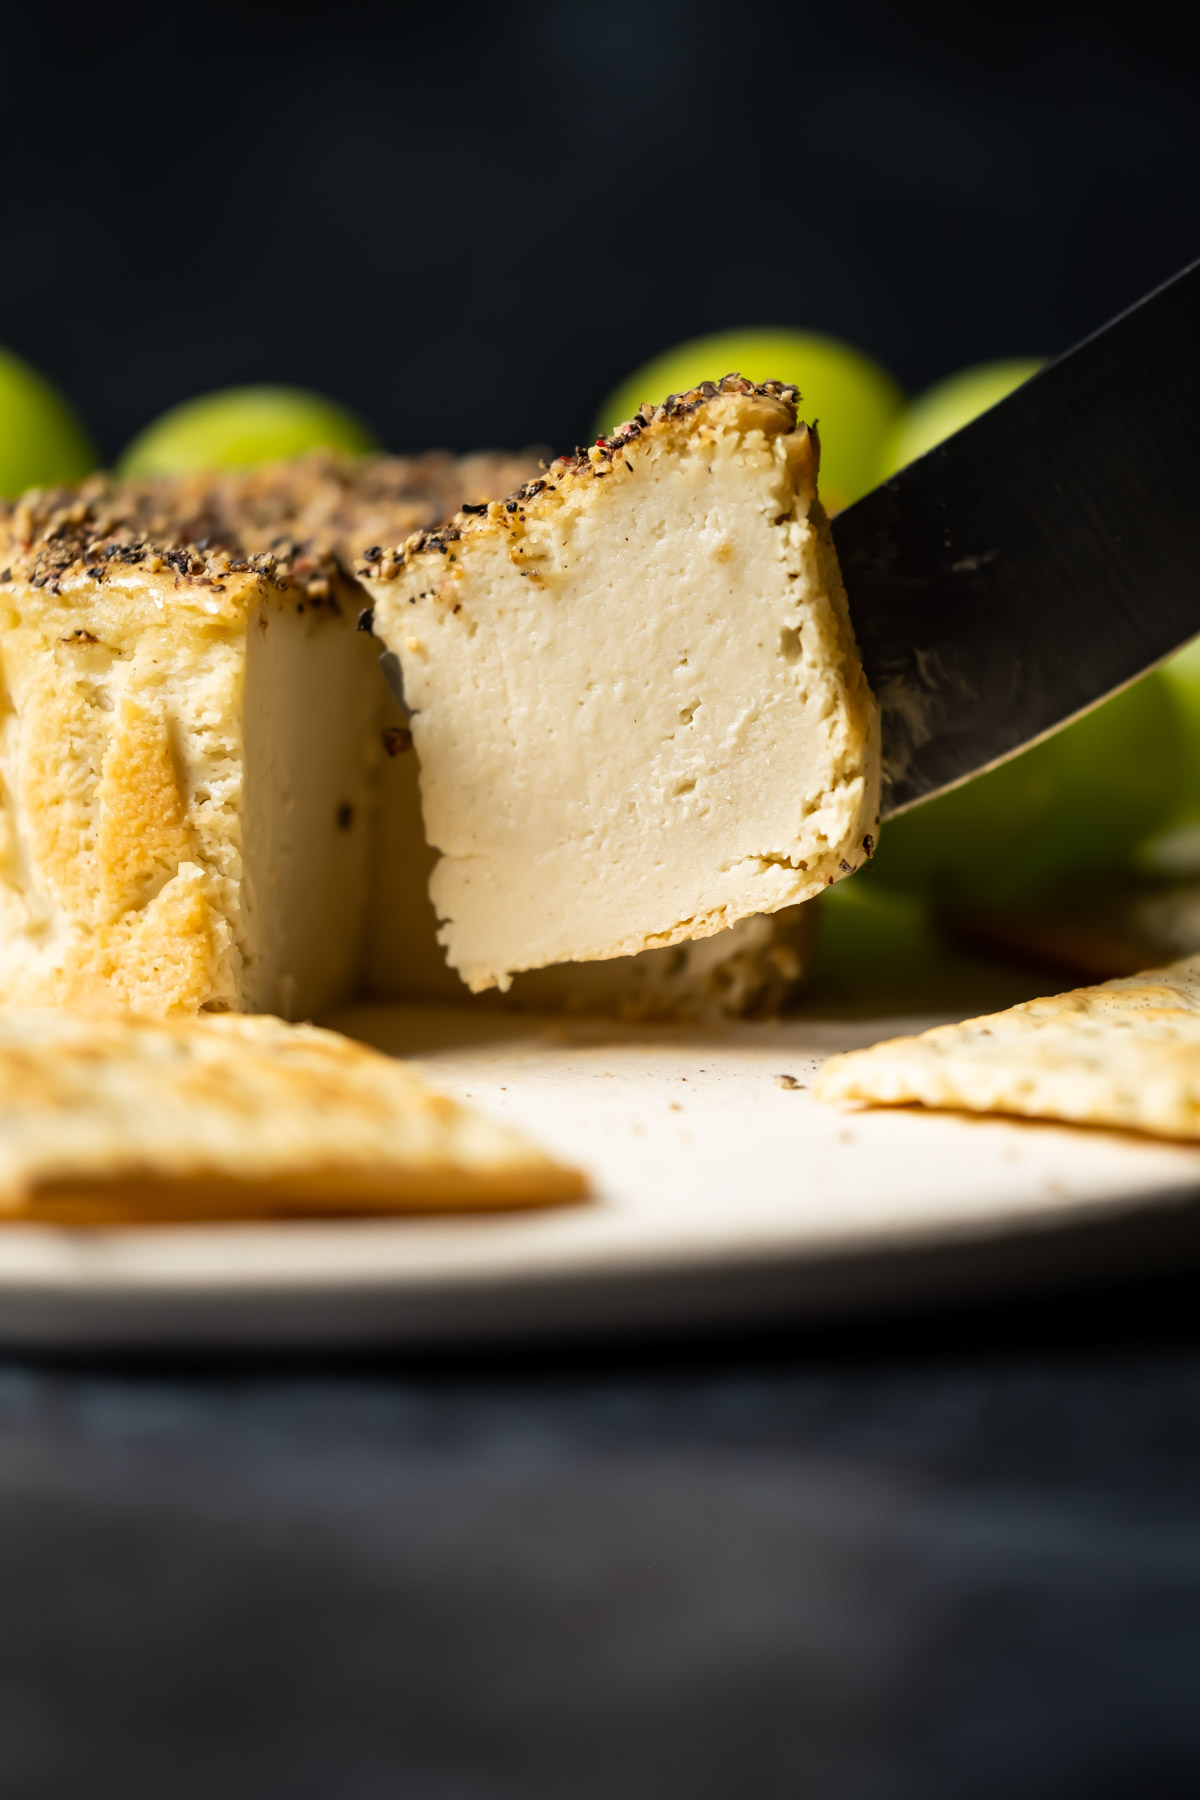 Slice of vegan camembert ready to serve from a white plate with crackers and grapes.